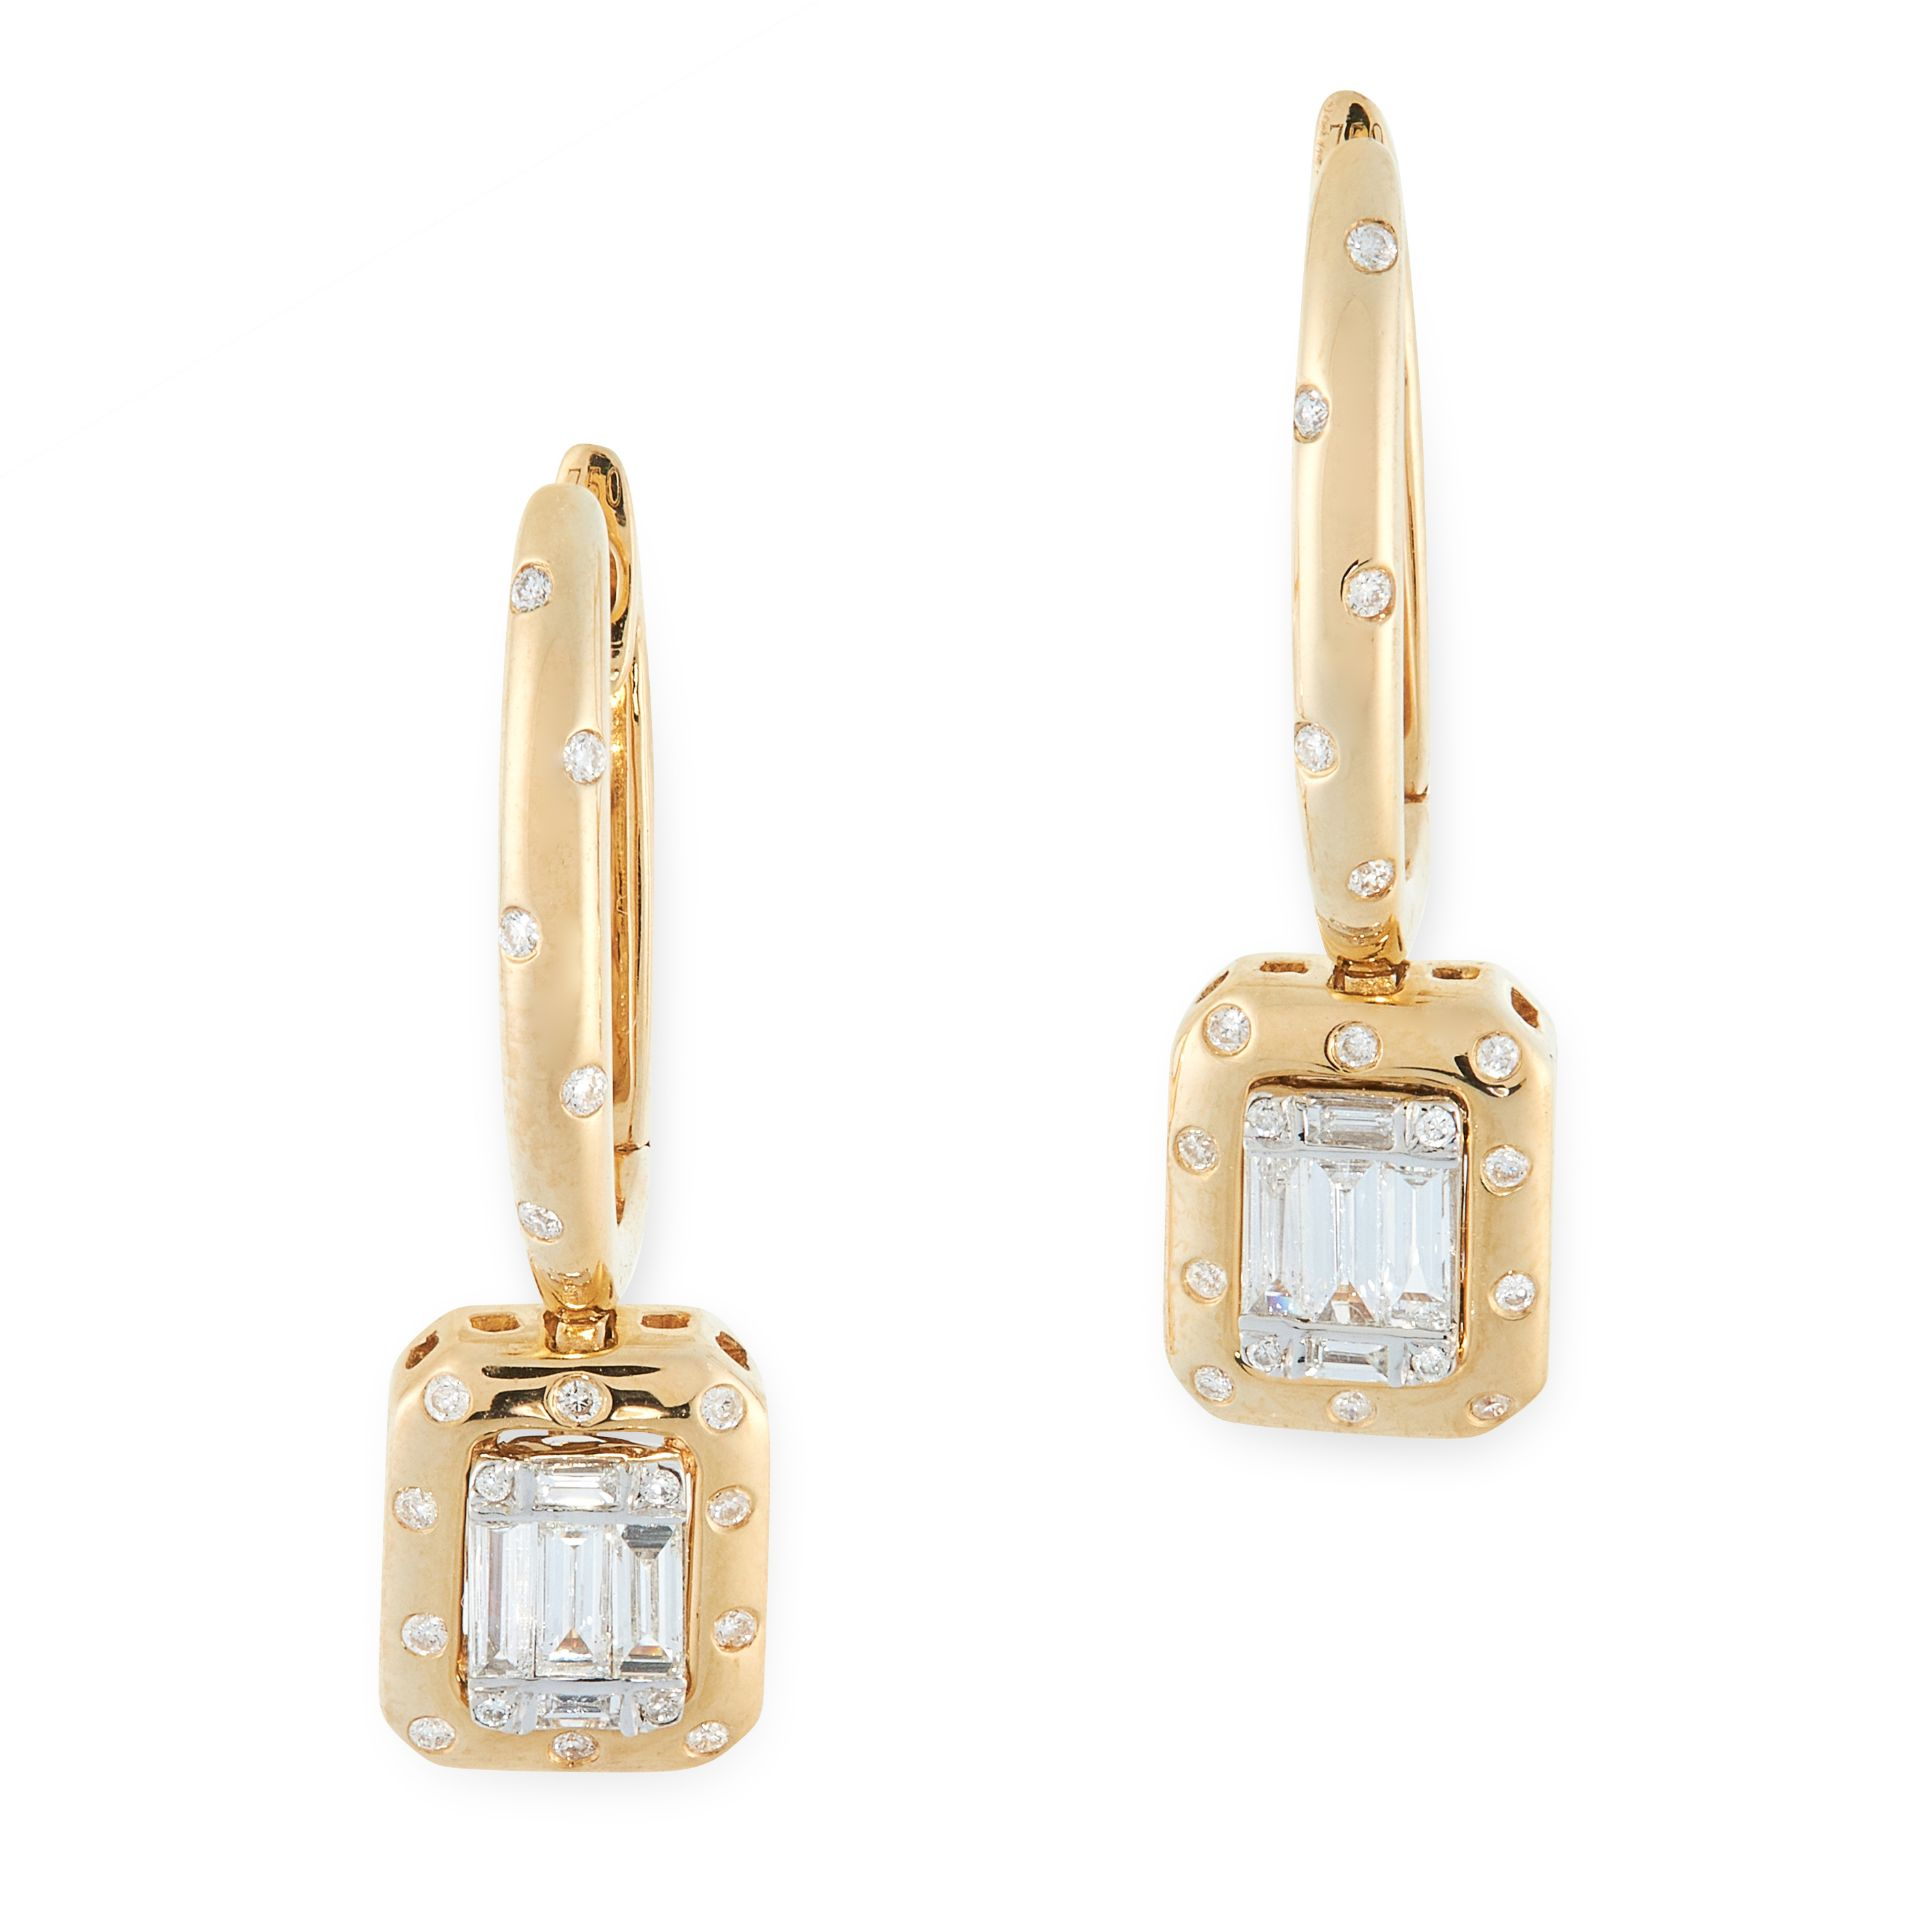 A PAIR OF DIAMOND DROP EARRINGS in 18ct yellow gold, each formed of a hoop jewelled with round cut